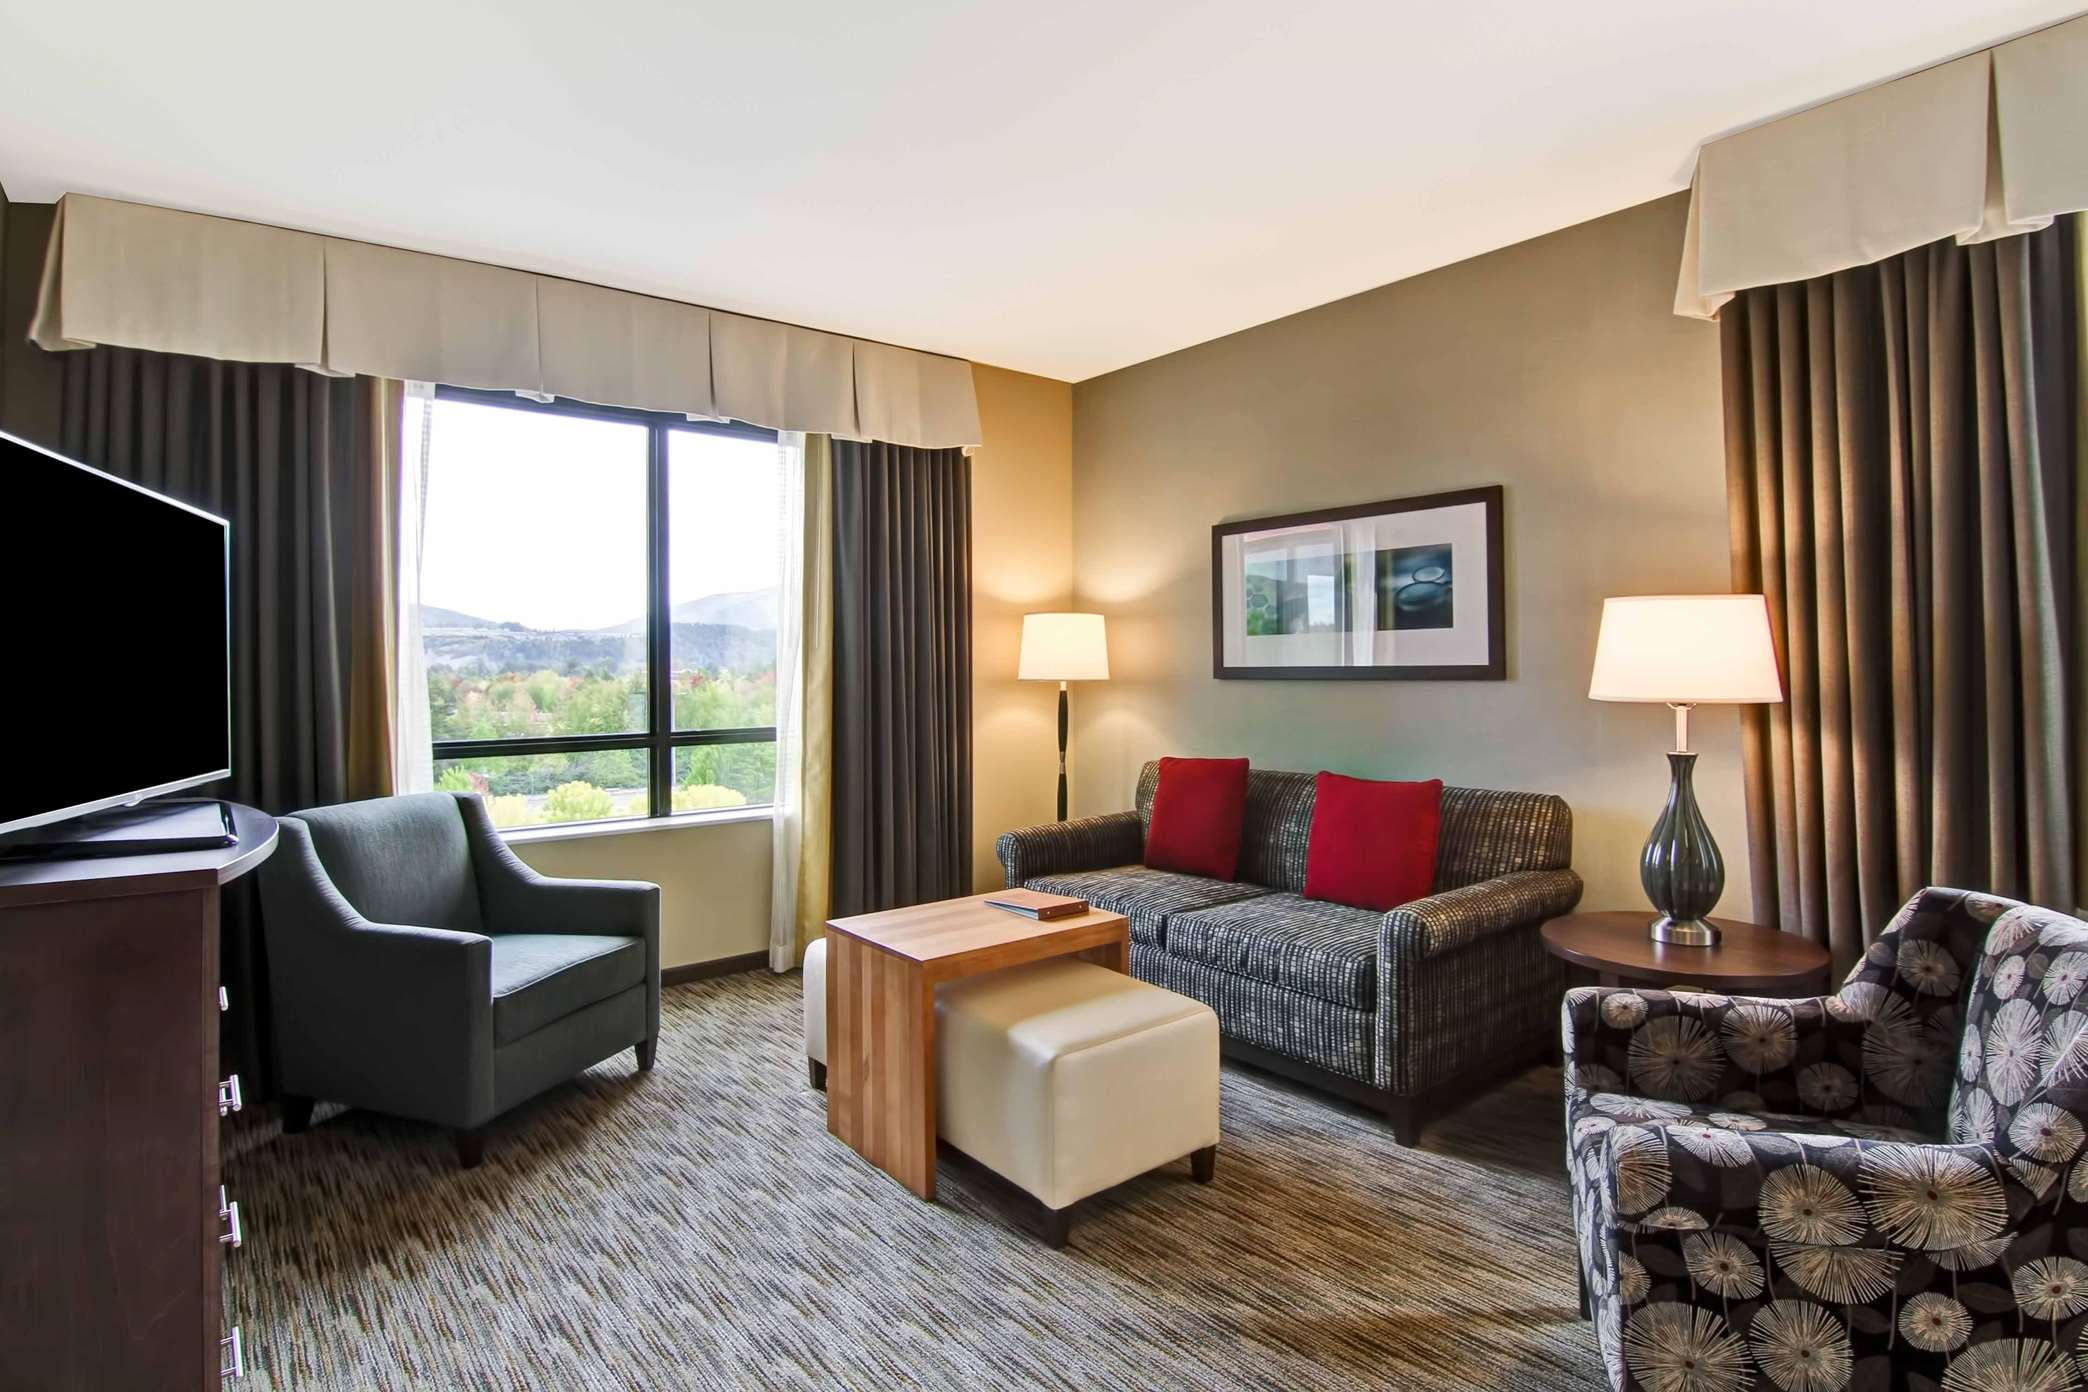 Homewood Suites by Hilton Seattle-Issaquah image 17